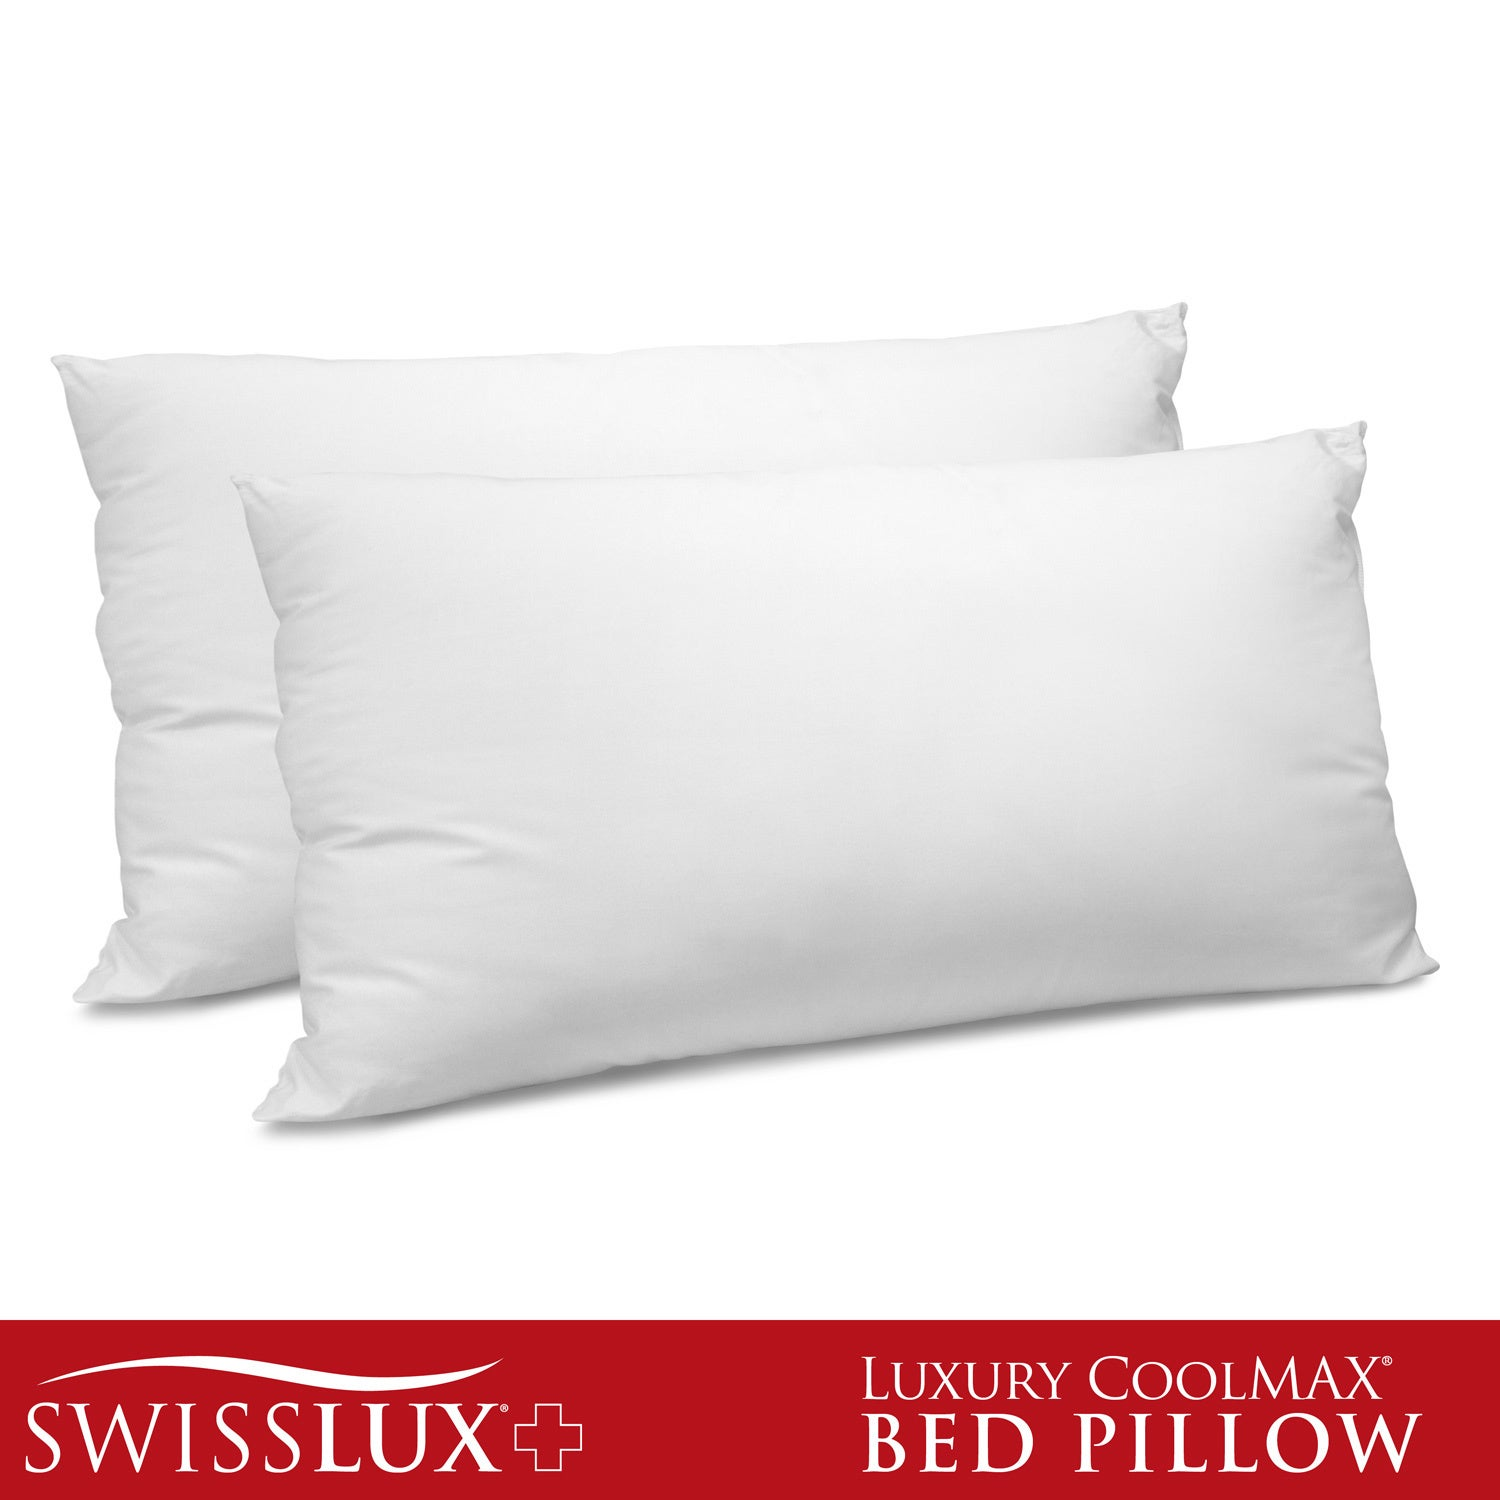 Swiss Lux 400 Thread Count CoolMax Down Alternative Pillow (Set of 2) at Sears.com